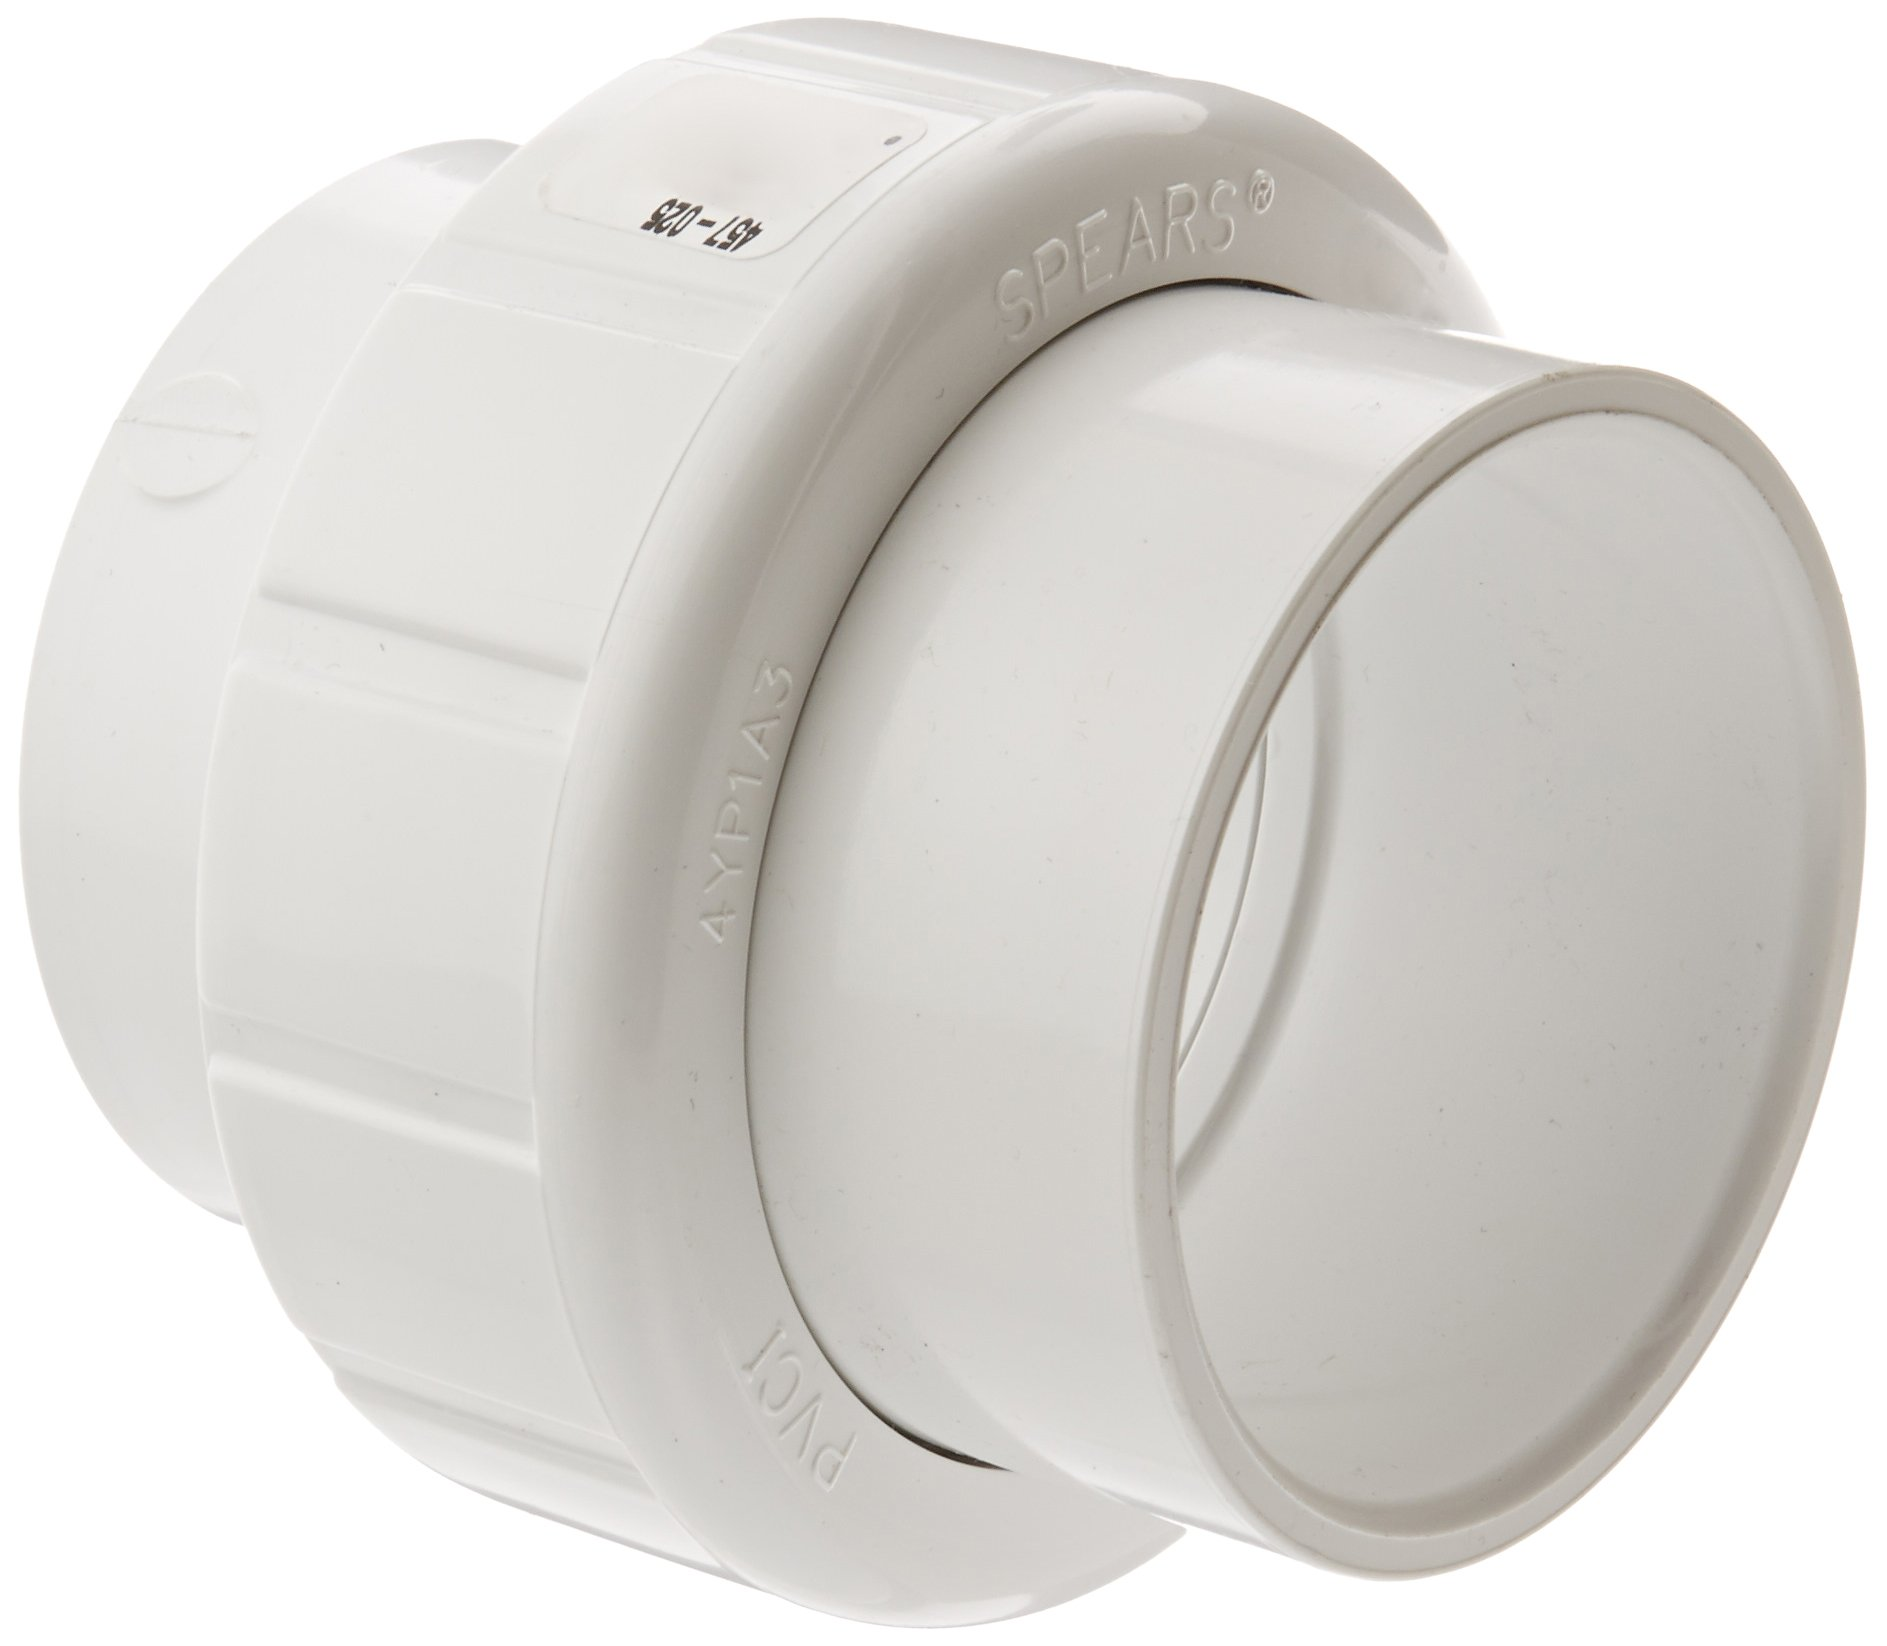 Spears 457 Series PVC Pipe Fitting, Union with Buna O-Ring, Schedule 40, 2-1/2'' Socket